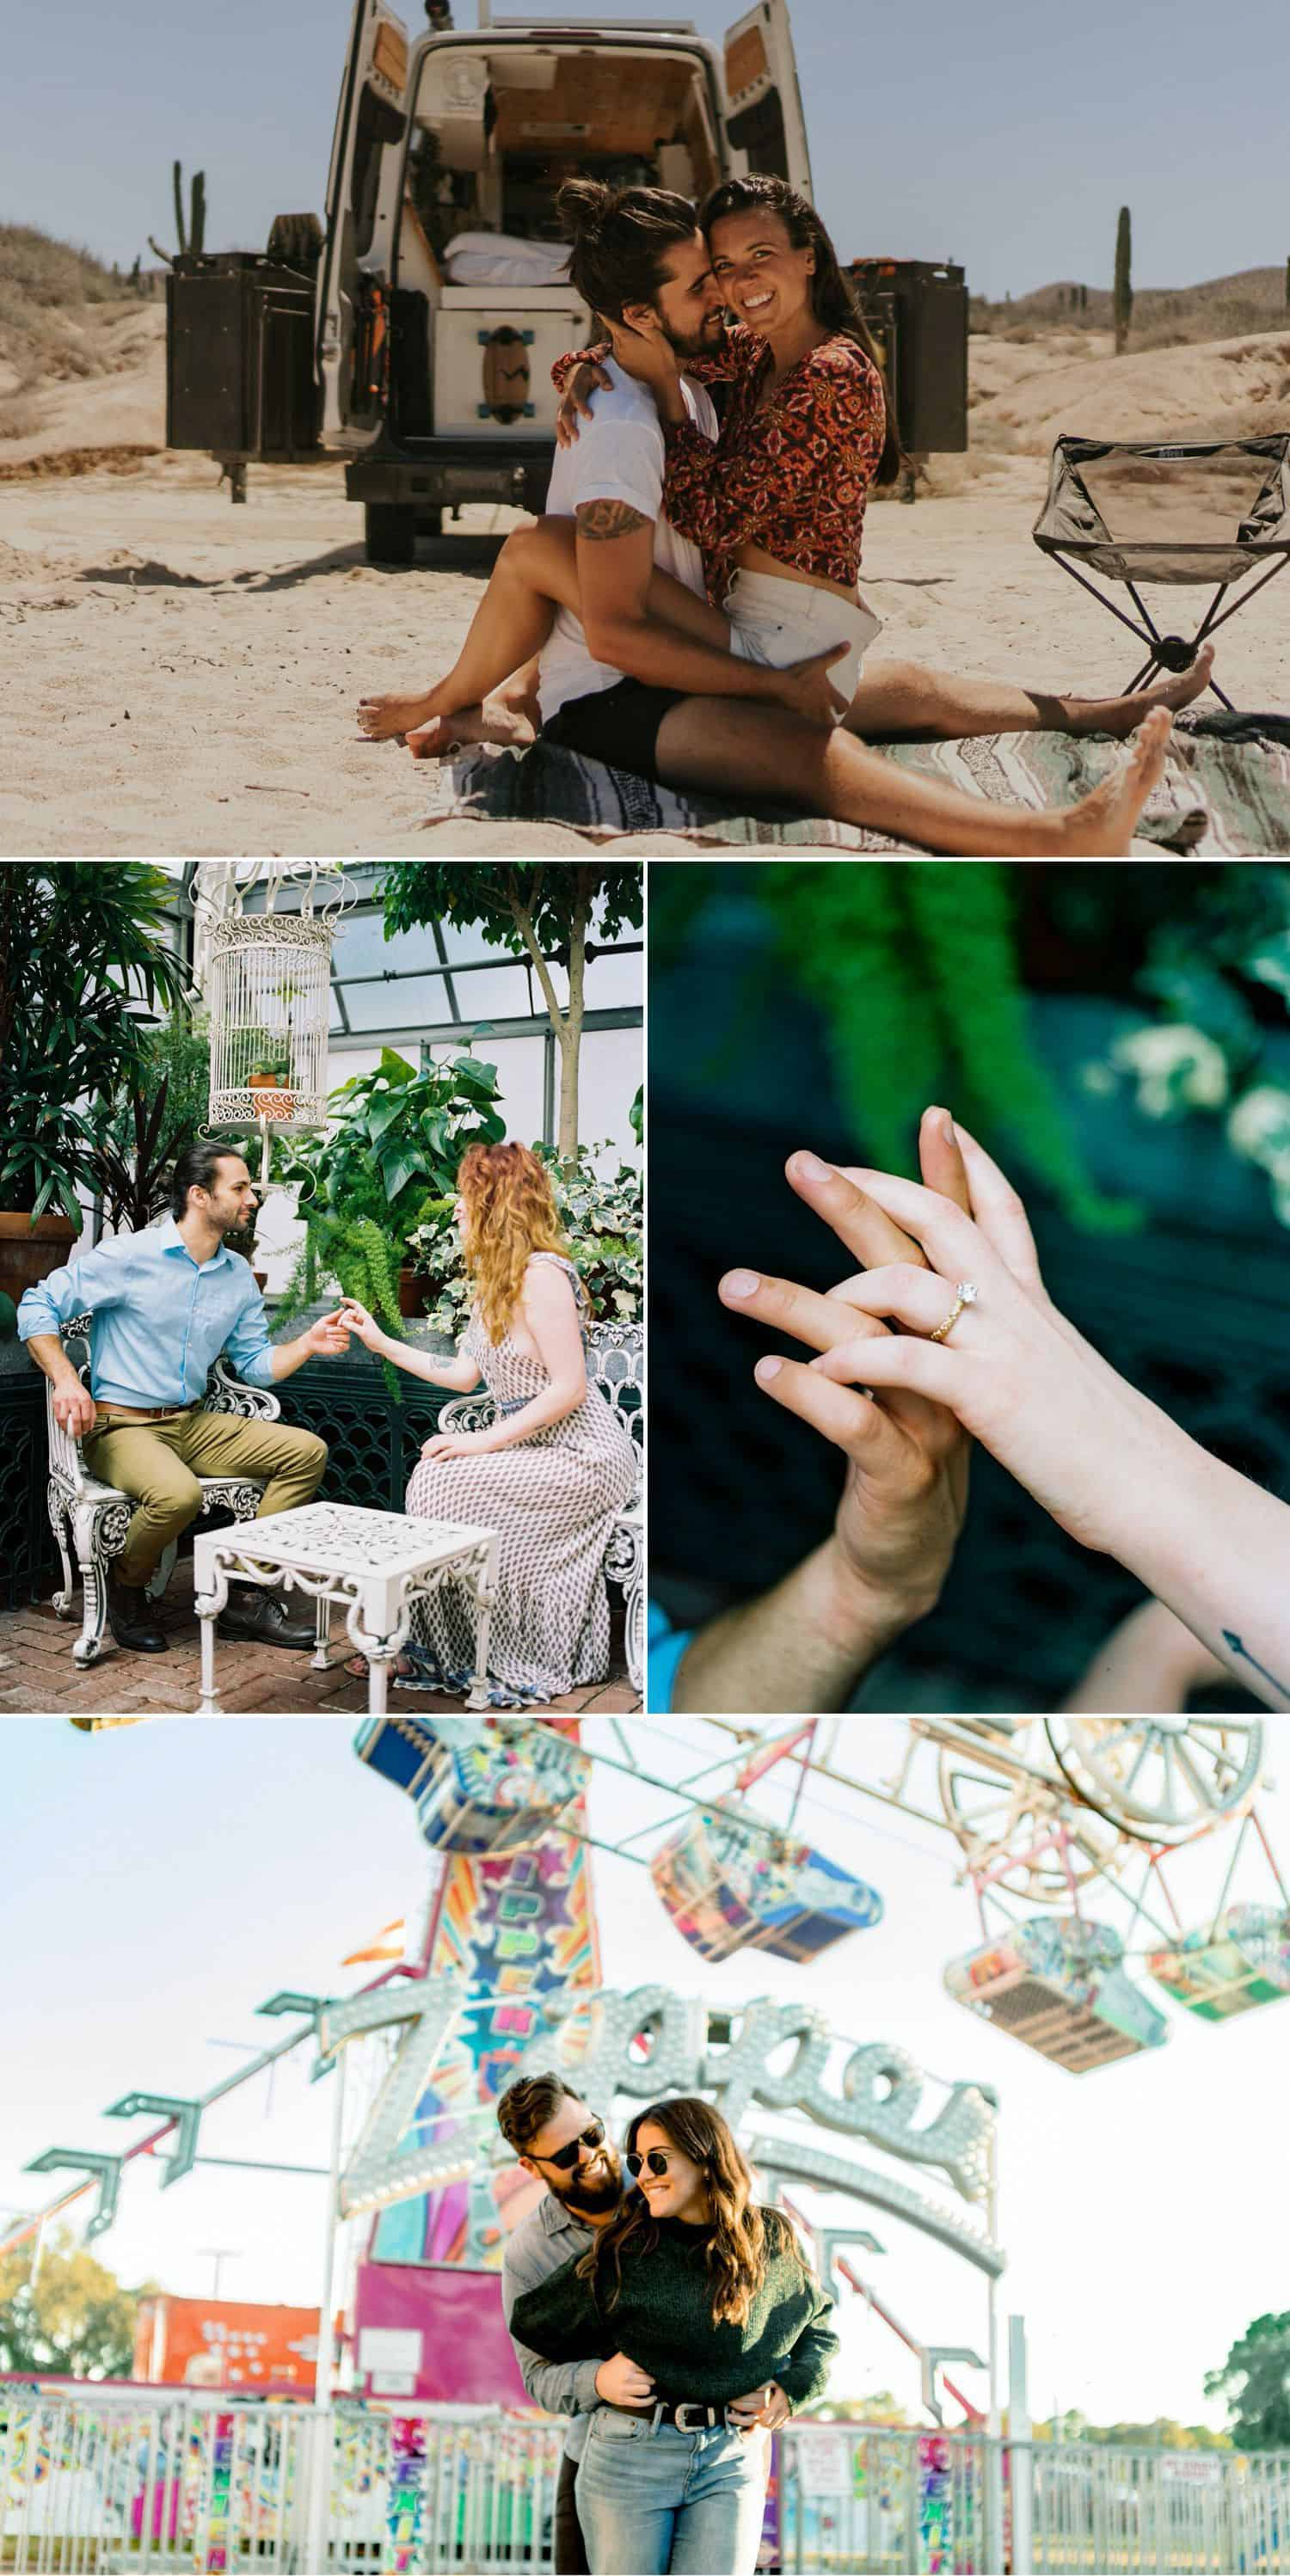 Use creative engagement photo poses and scenes to tell a story